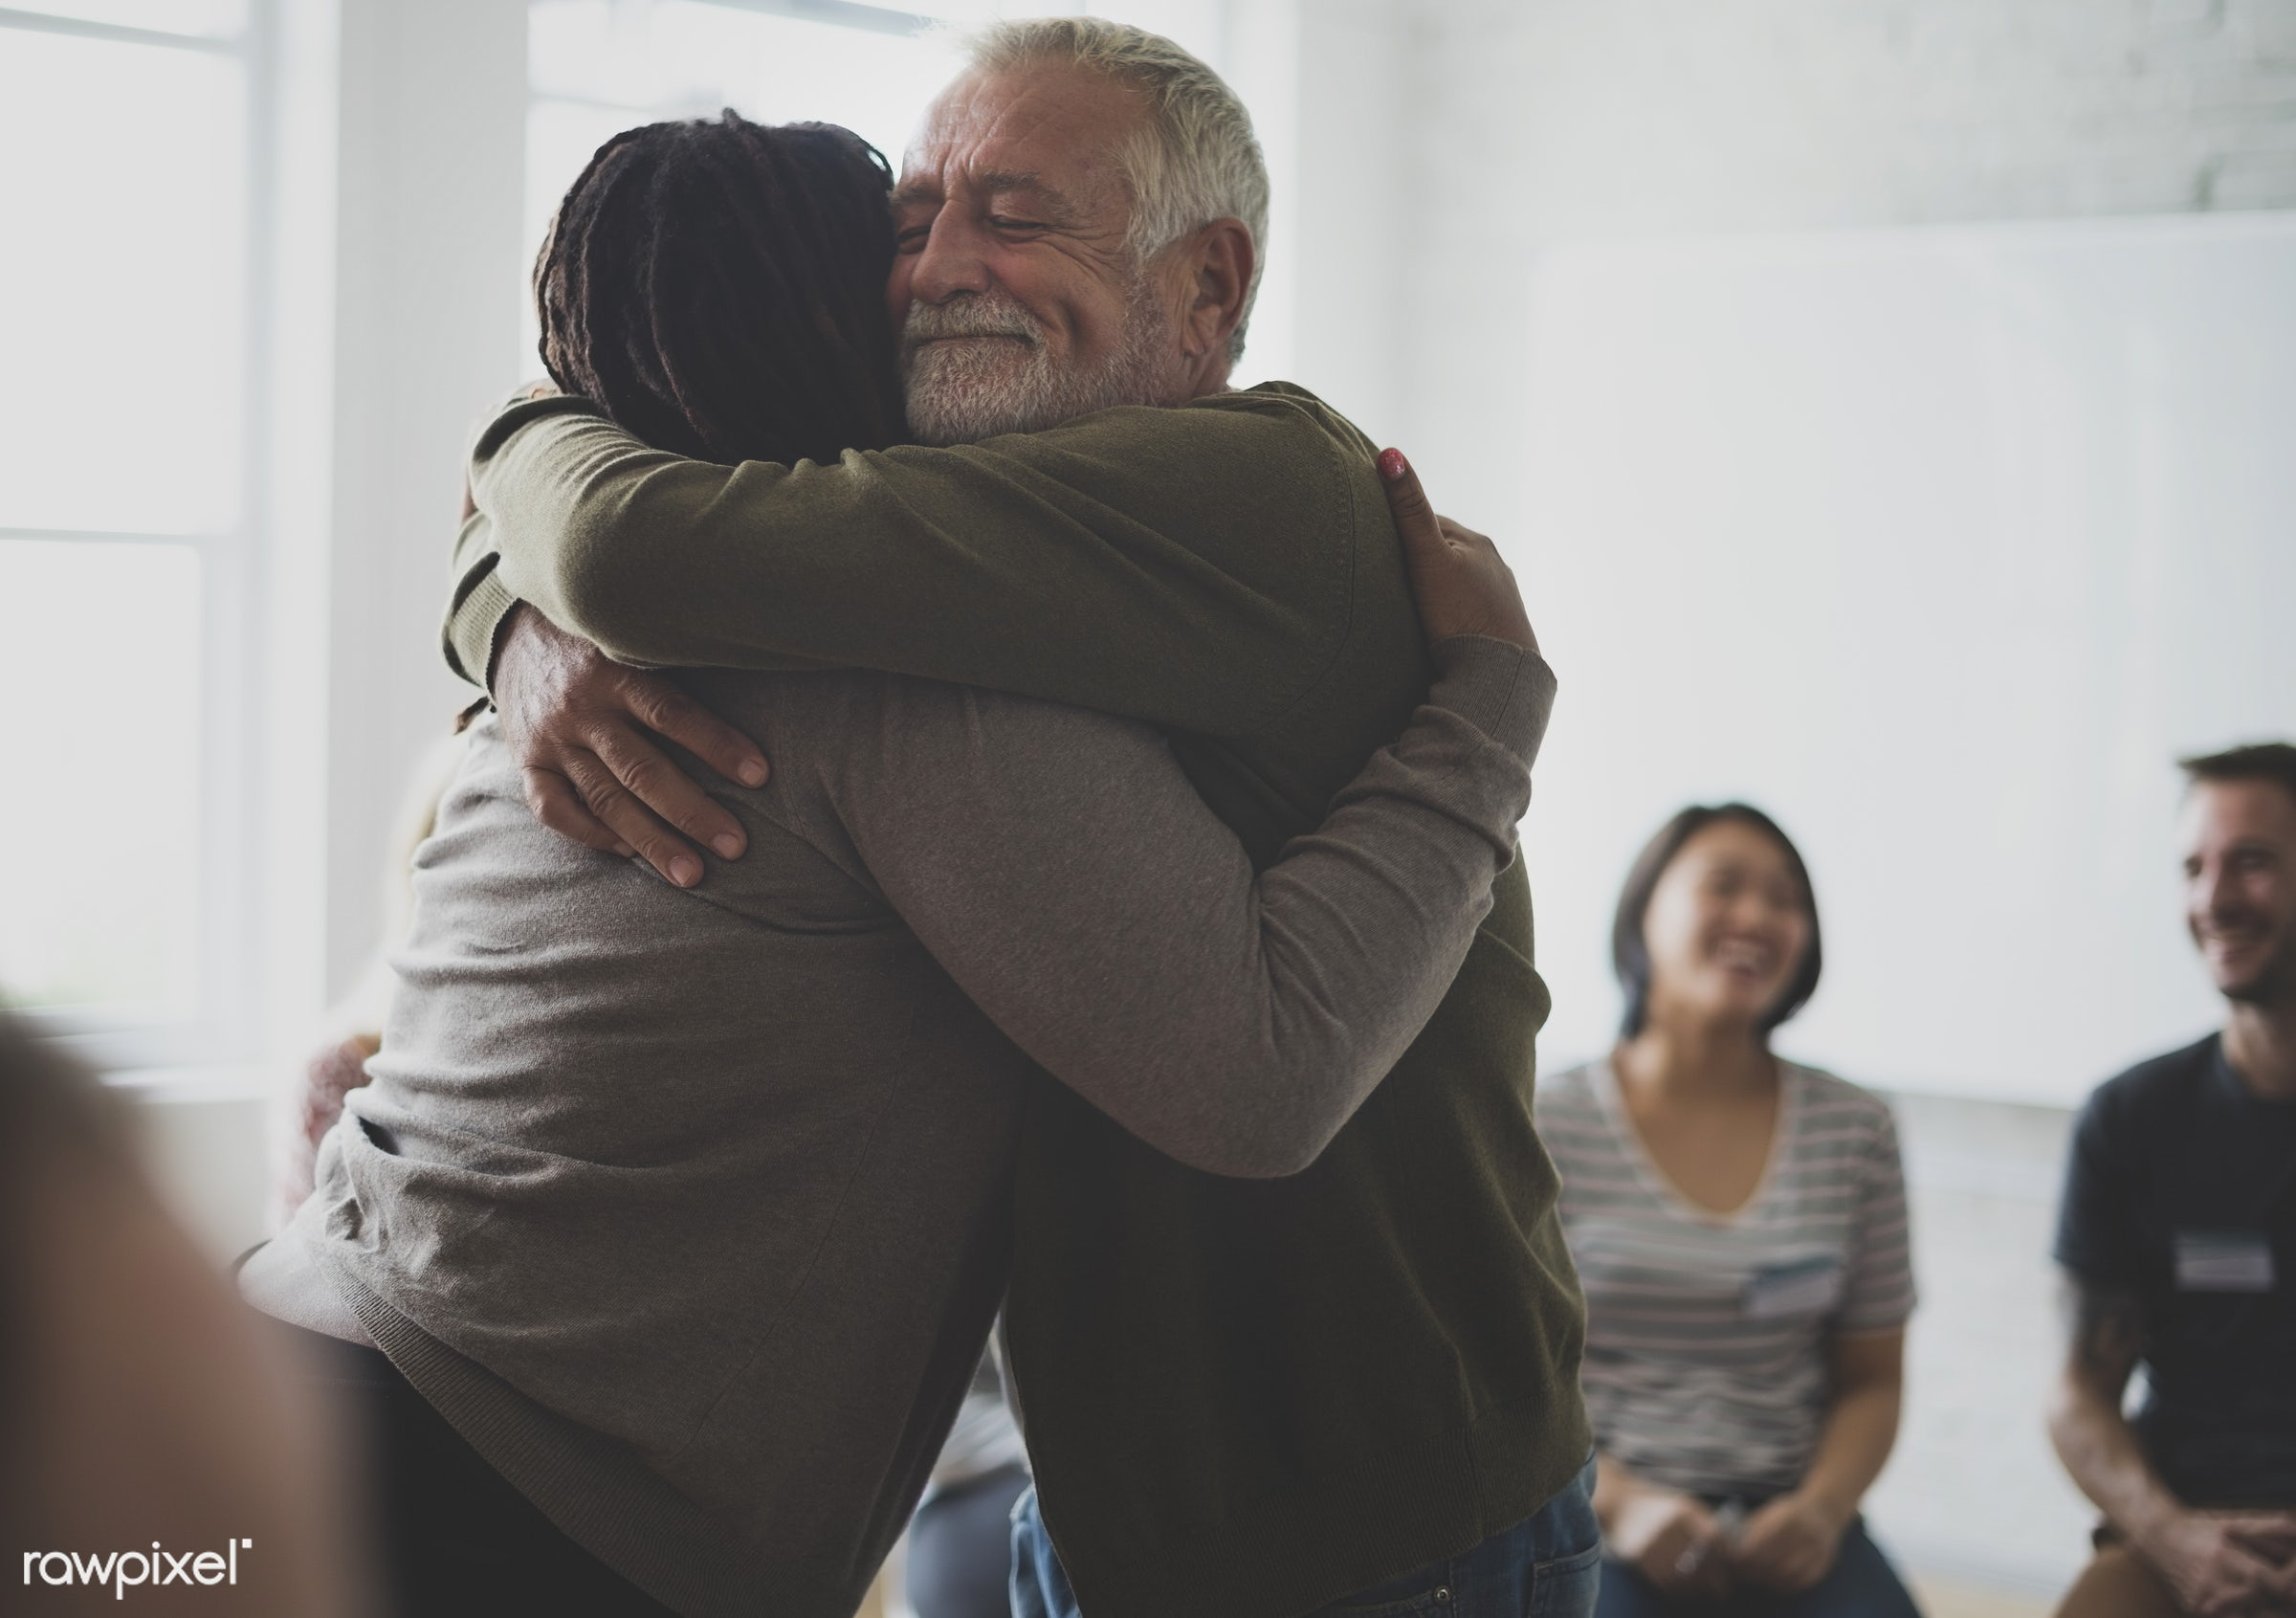 Old guy consoling a woman with a hug - discussion, hug, diverse, bonding, people, caucasian, asian, help, friends, sharing,...